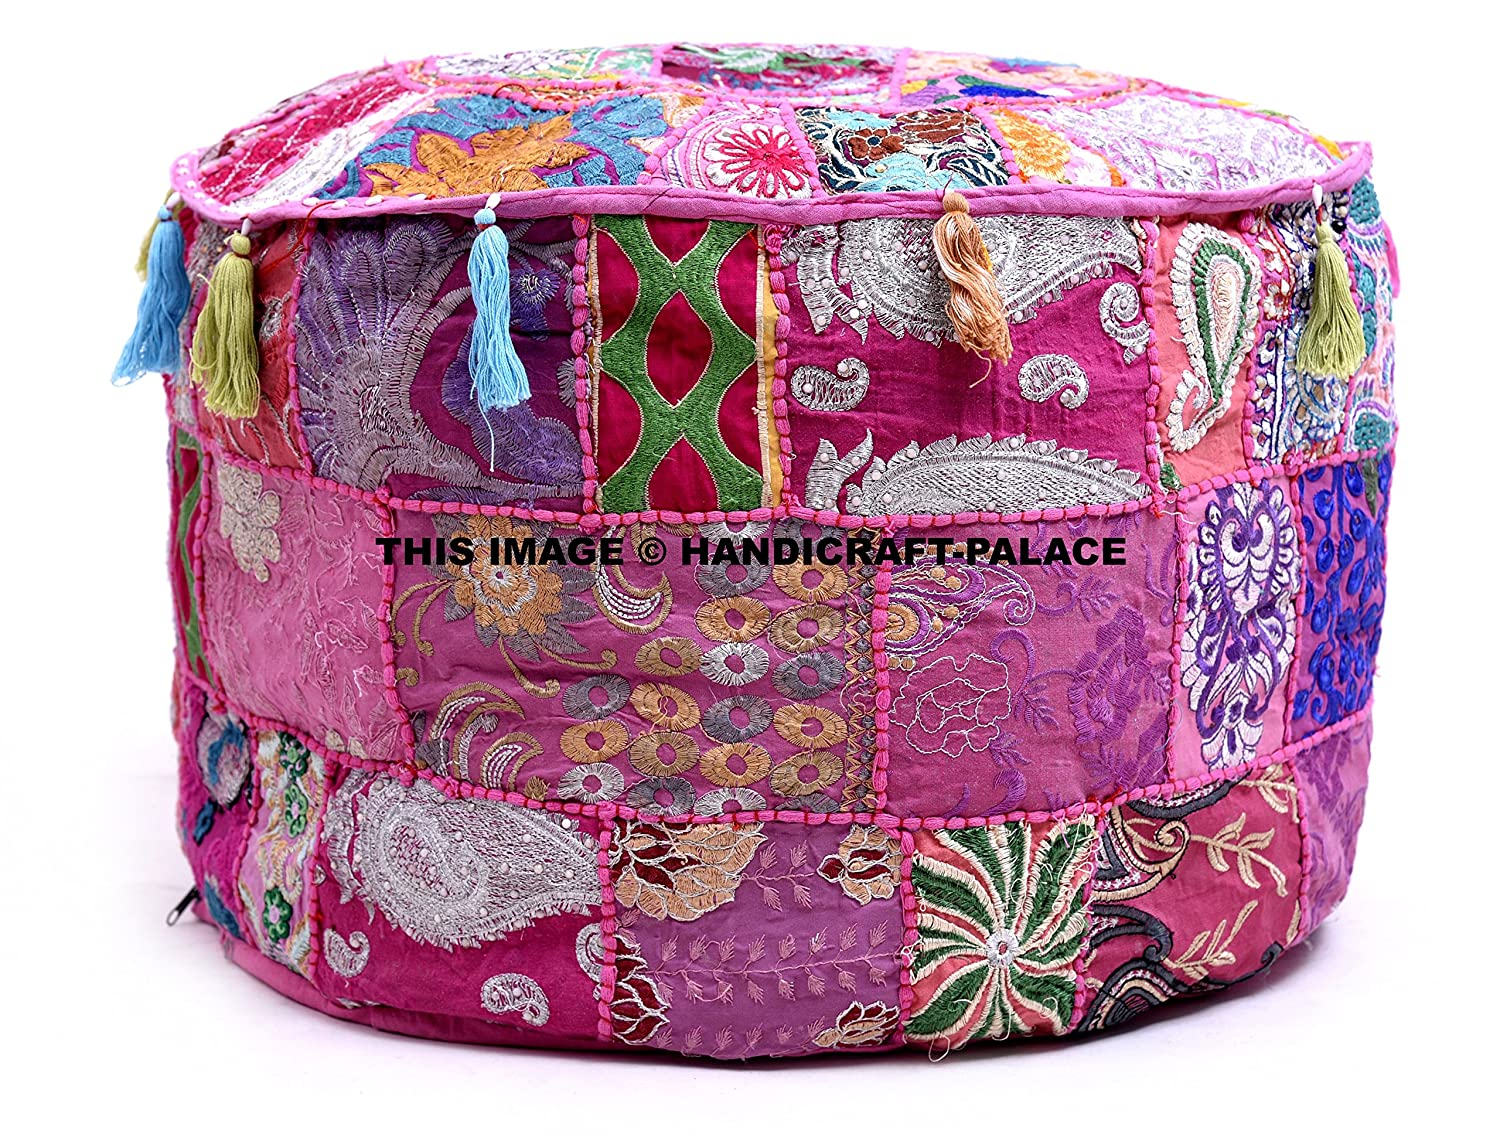 Indian Traditional Home Decorative Ottoman Handmade Pouf, Indian Comfortable Floor Cotton Cushion Ottoman Cover Embellished With PatchWork And Embroidery Work, Indian Vintage Pouf Handicraft-Palace POS-16